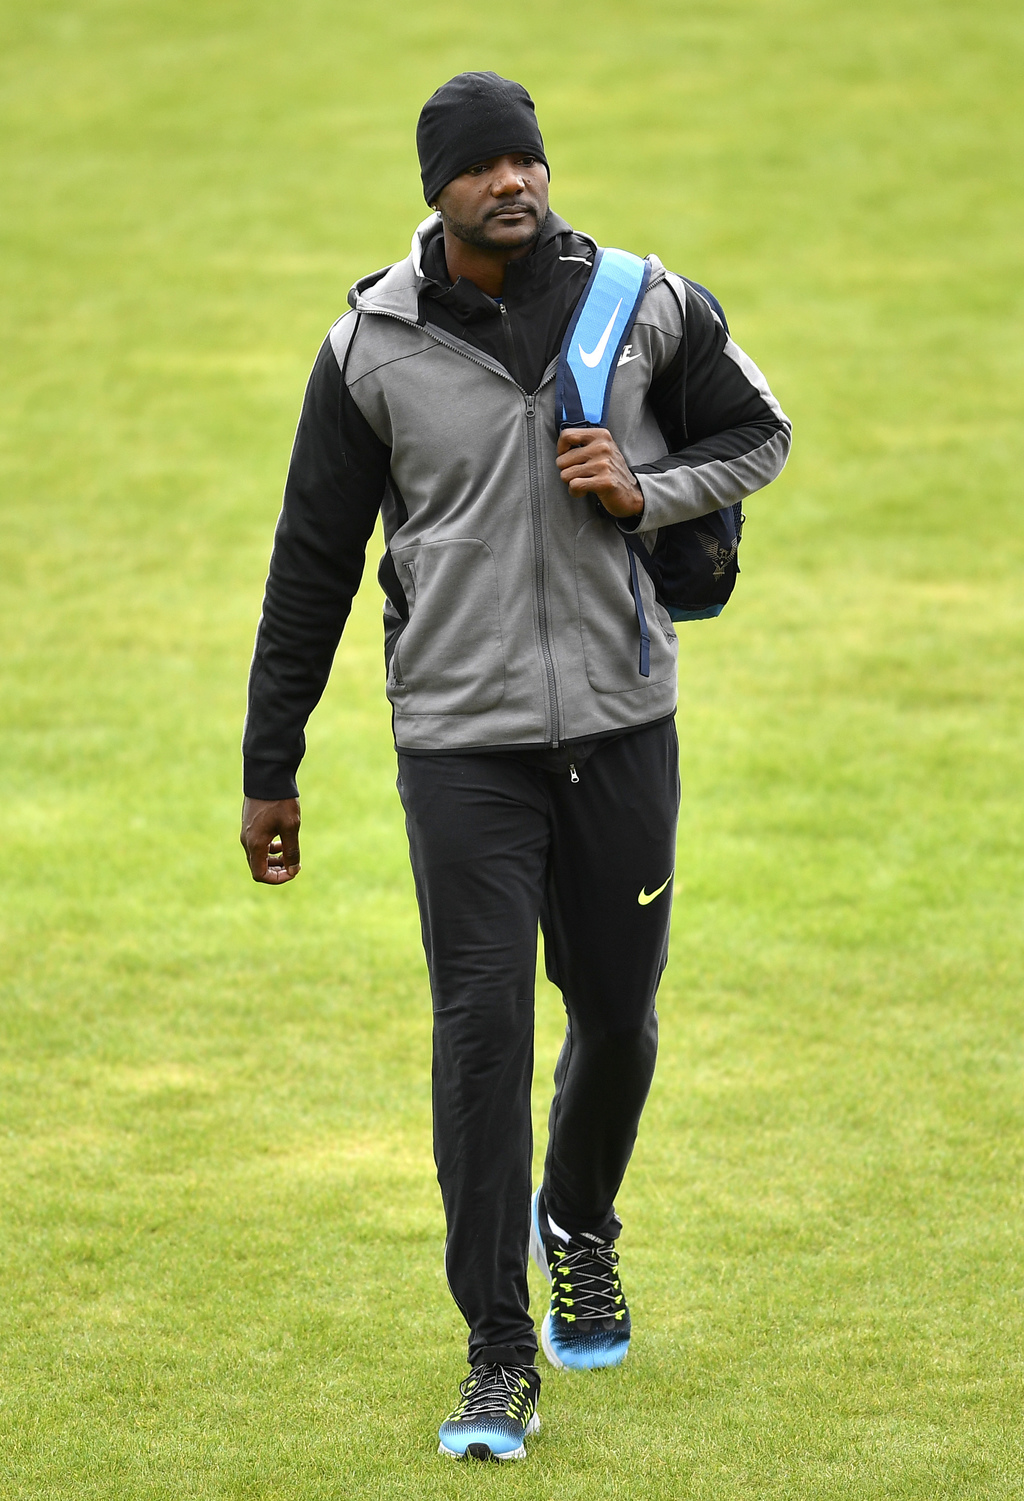 U.S. sprinter Justin Gatlin arrives for a training session ahead of the World Athletics Championships in London Thursday, Aug. 3, 2017. The event star...